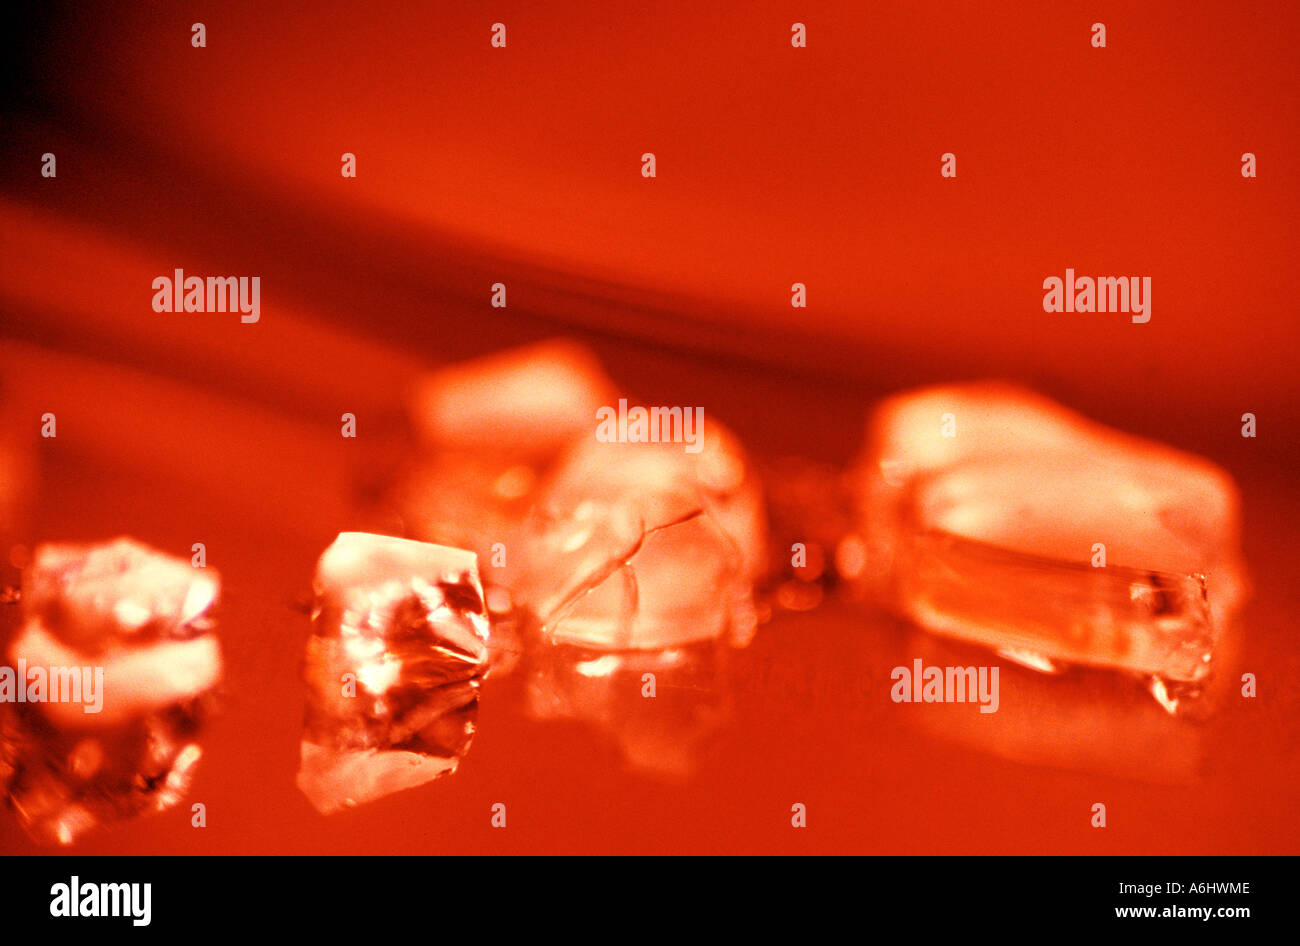 ice fragments on red background - Stock Image